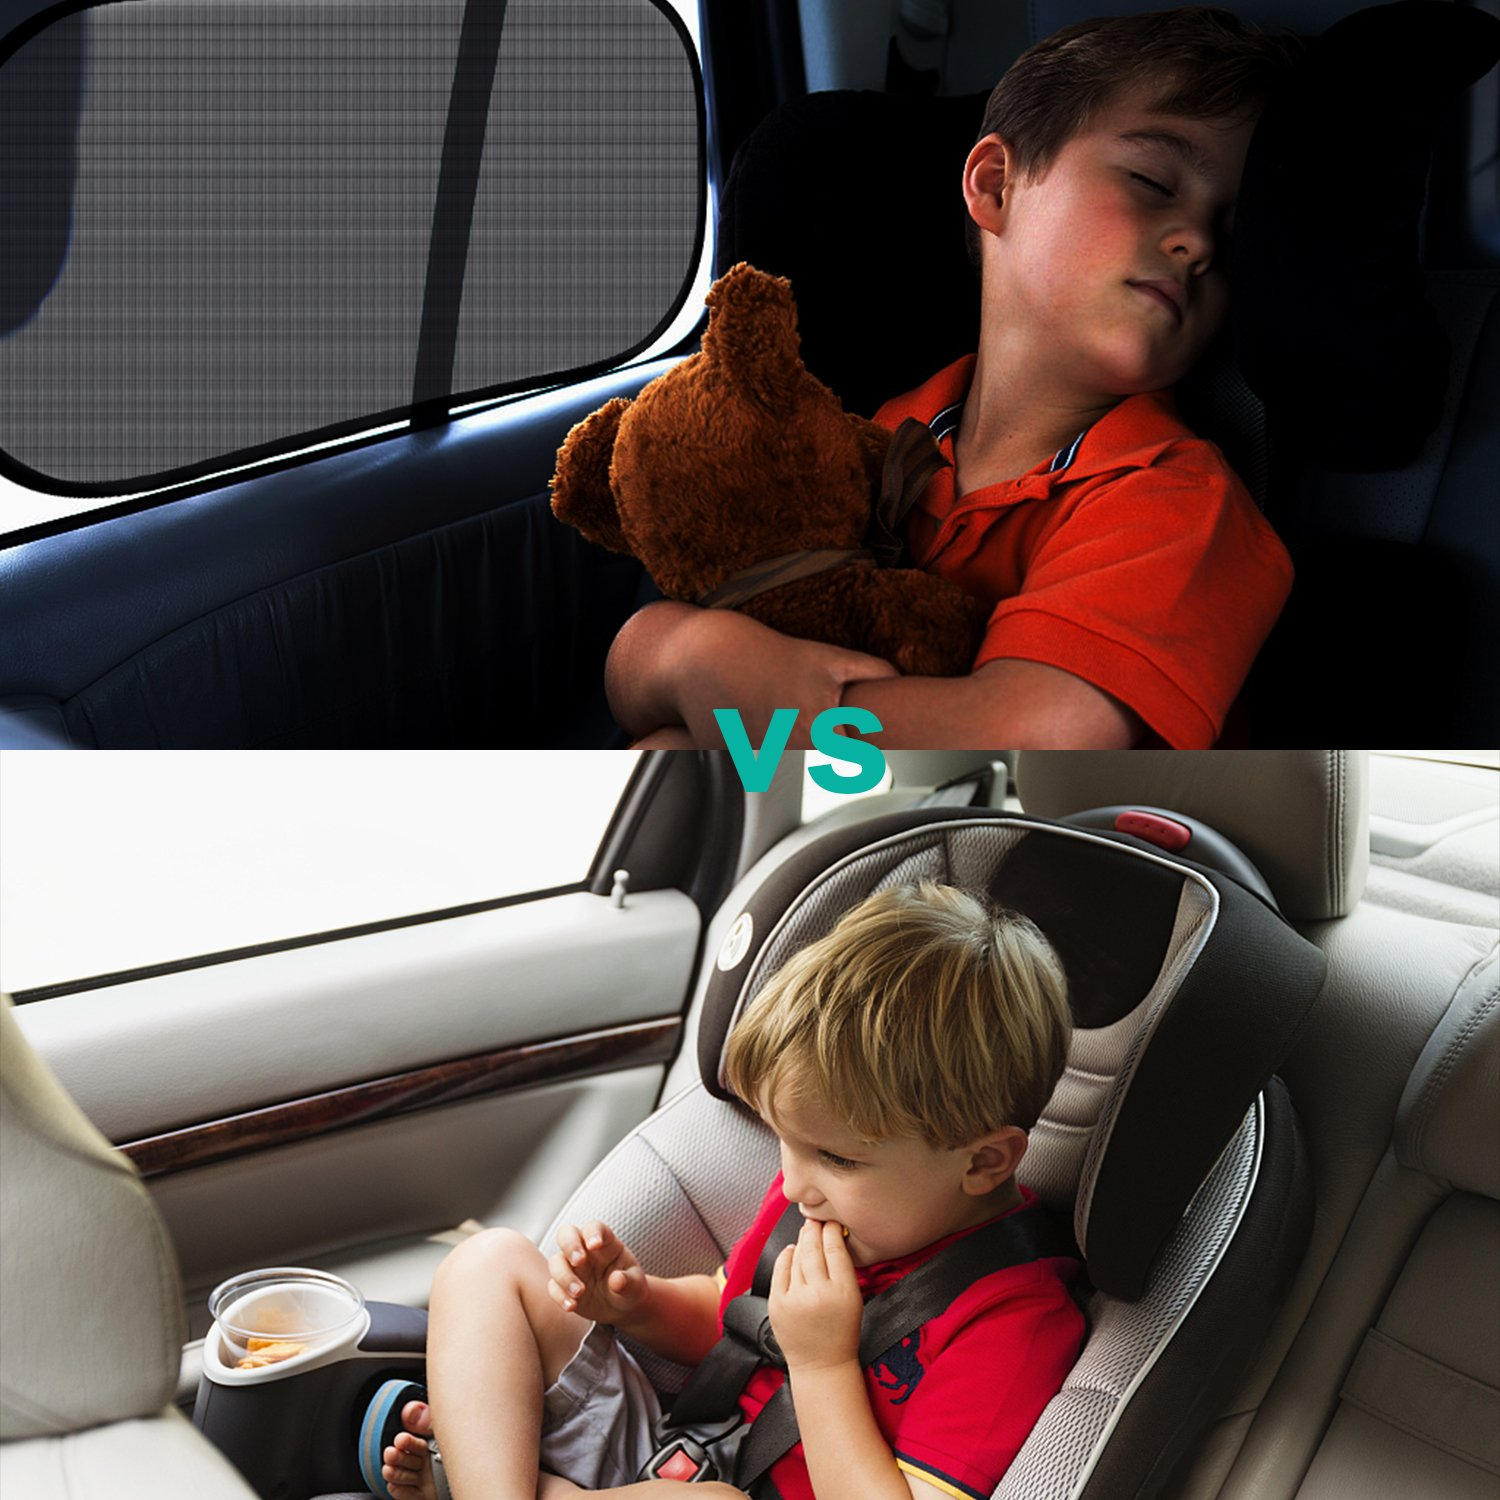 Toplus 22x14 Extra Large Car Window Shades for Side and Rear Window 80 GSM Static Cling Side Window Shade for Maximum UV Rays Sun Glare Protection 3PCS Car Sun Shades for Baby Child Kids